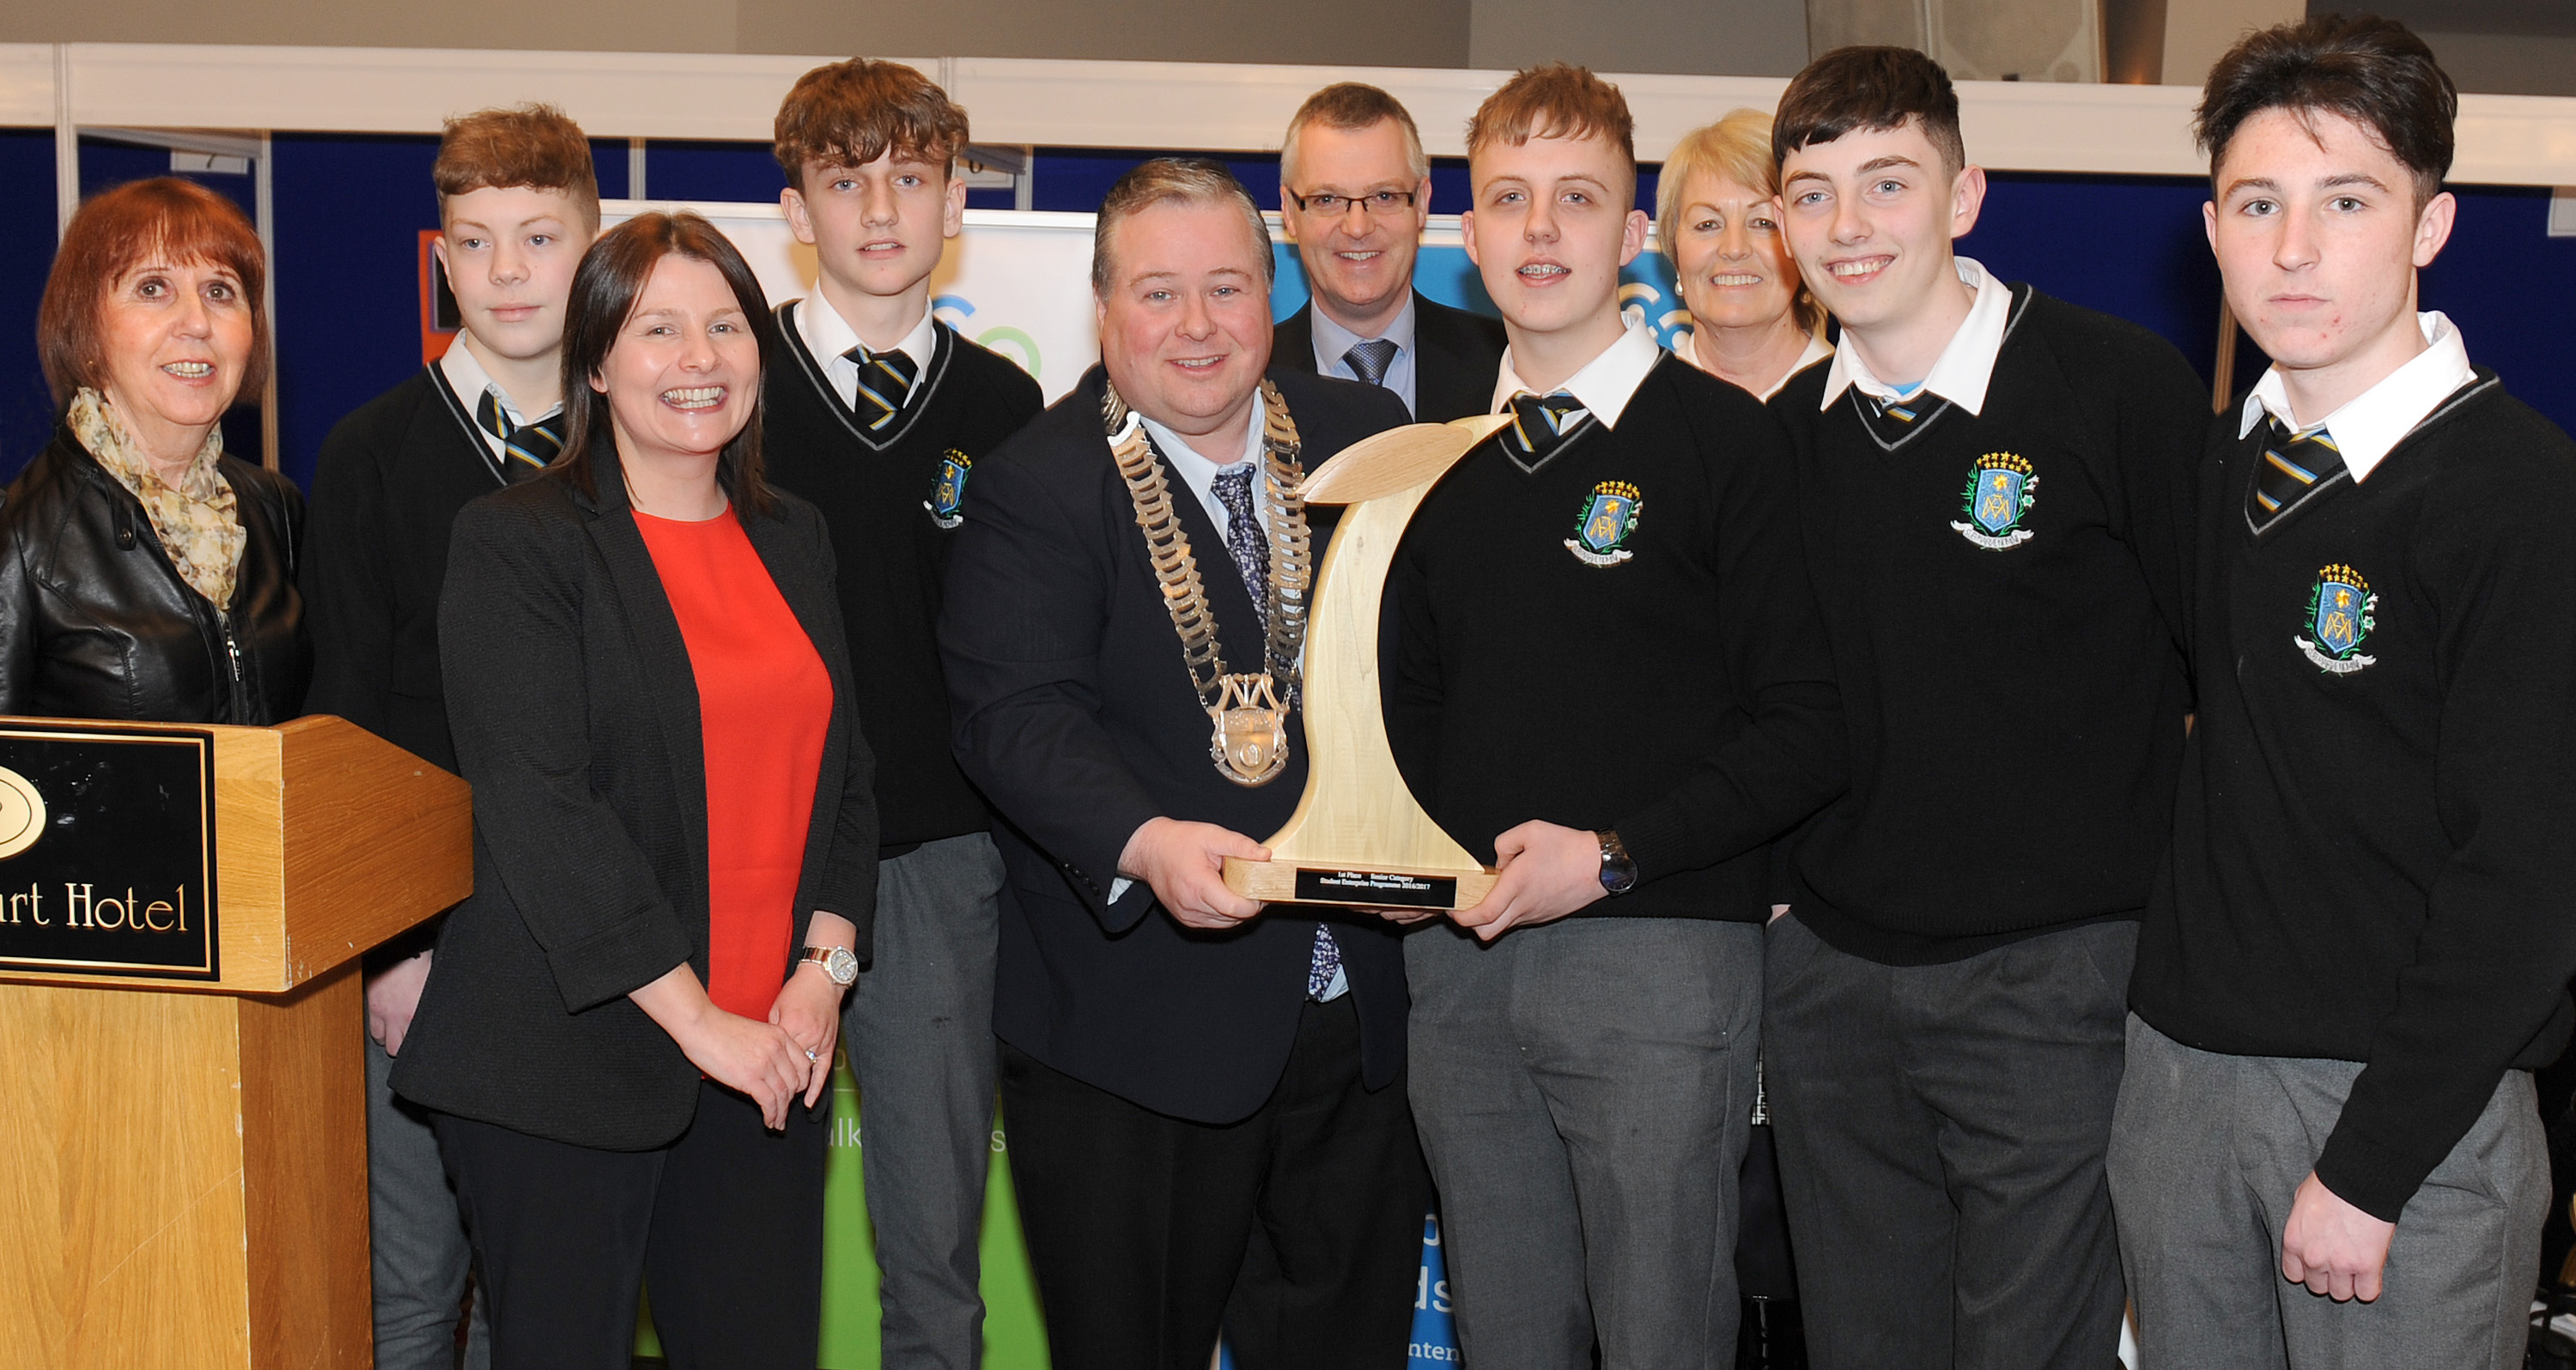 Louth Student Enterprise Awards 2017